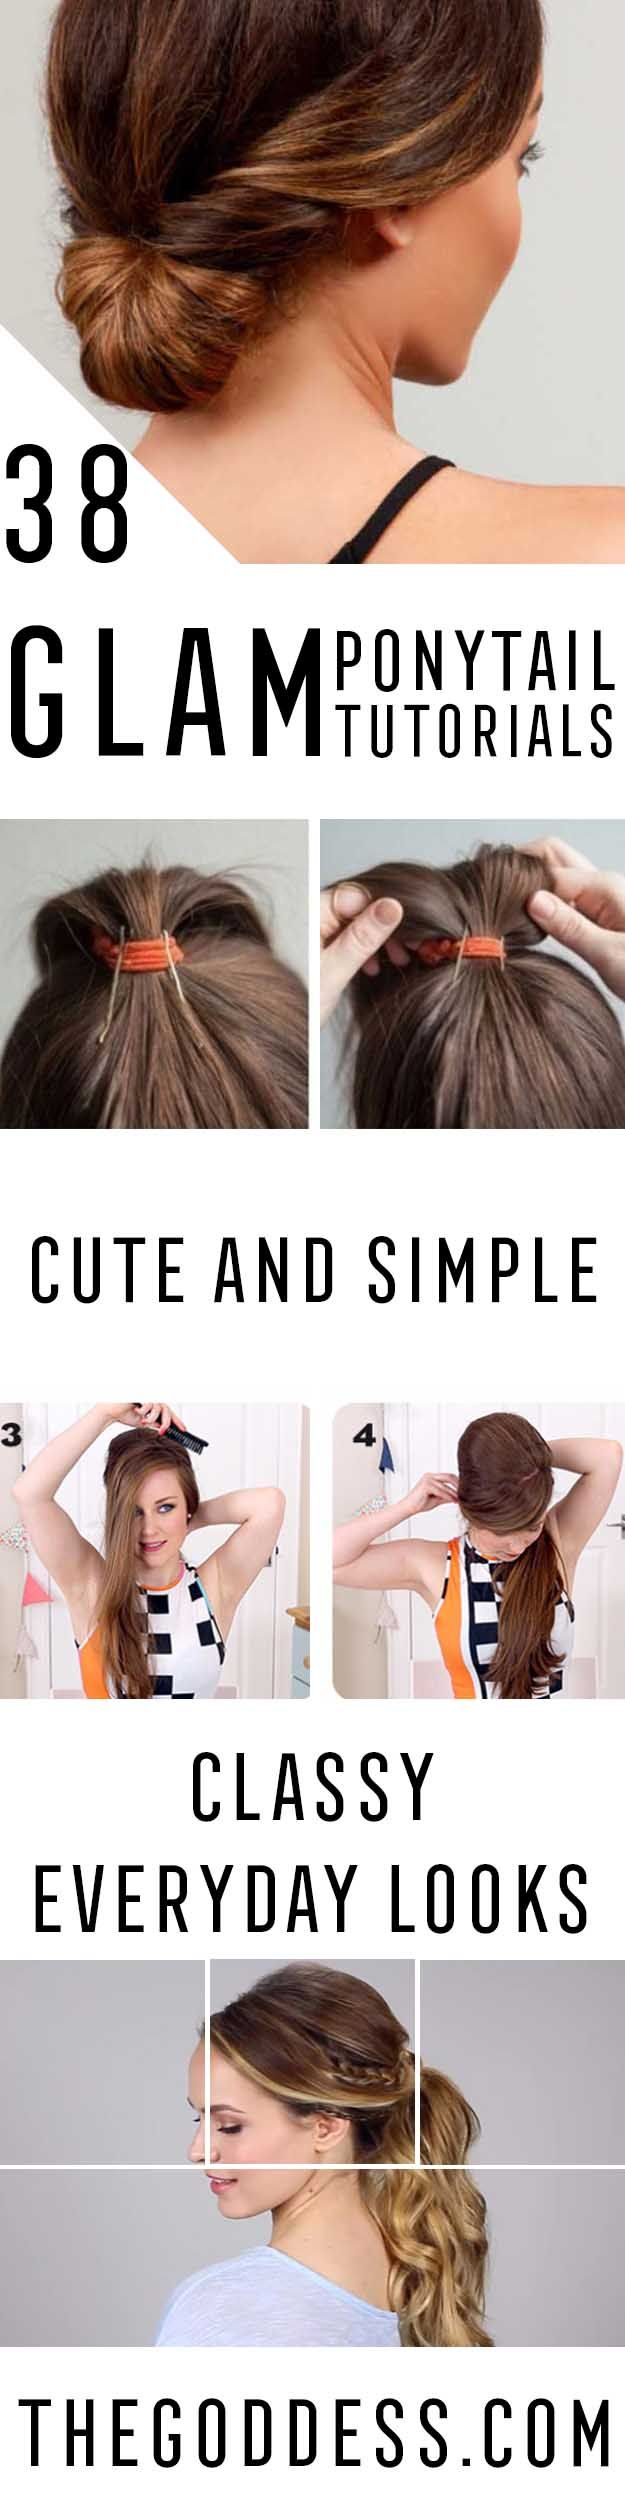 Glam Ponytail Tutorials - Simple Hairstyles and Pony Tails, Messy Buns, Dutch Br...